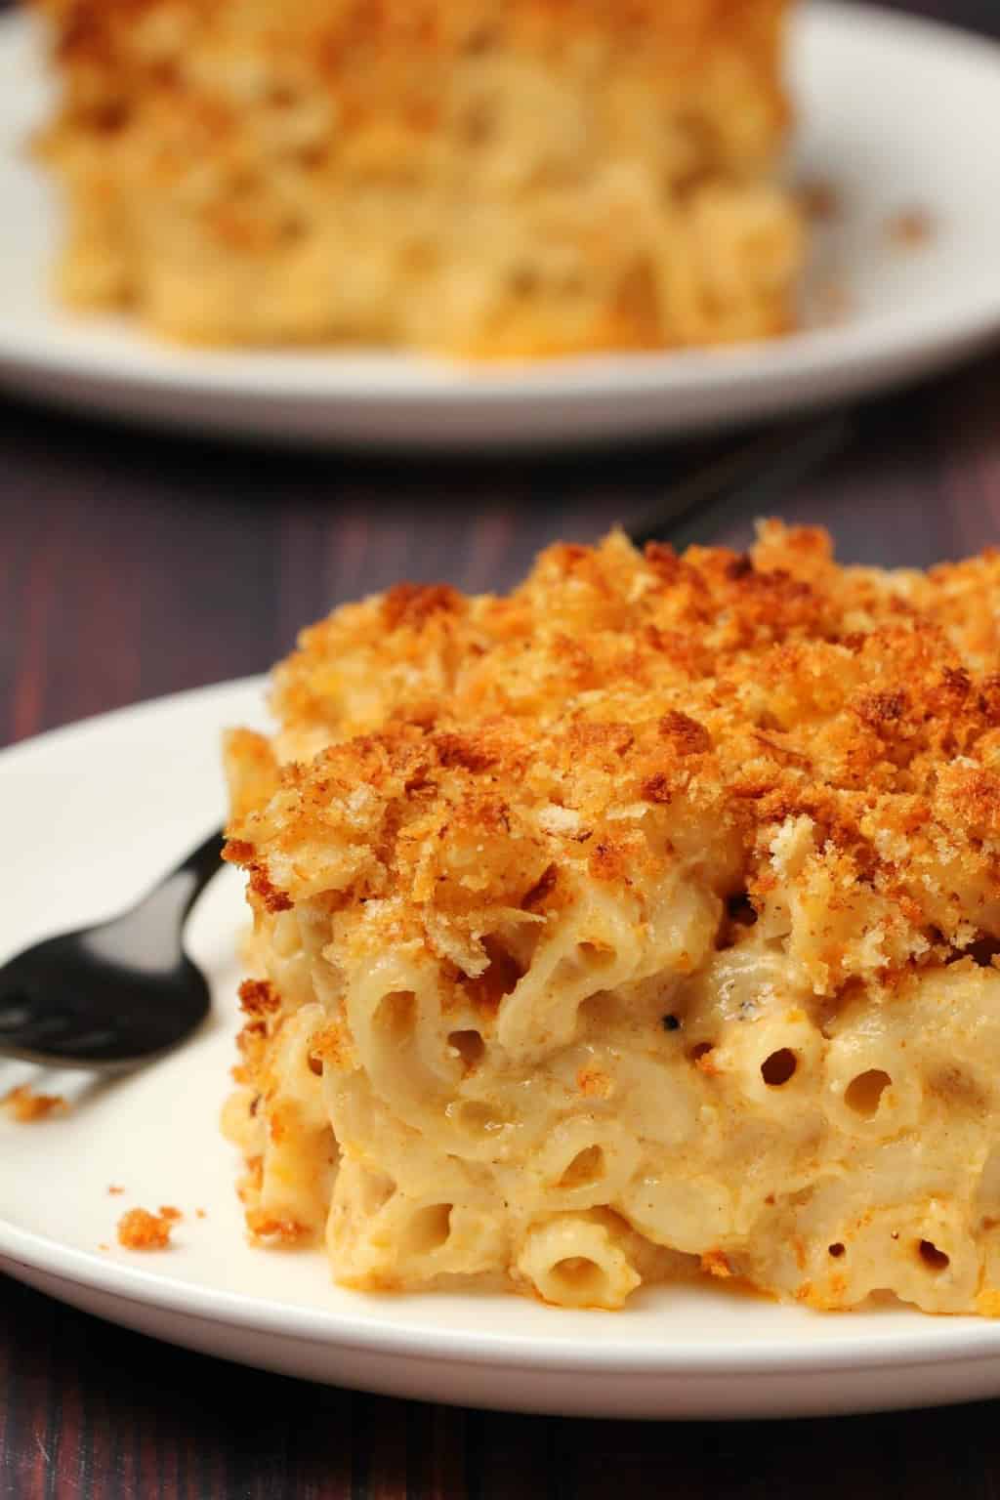 This Classic Vegan Mac And Cheese Is Ultra Cheesy Saucy And Creamy Topped With Breadcrumbs And Baked Until Golden B In 2020 Vegan Mac And Cheese Recipes Vegan Dishes